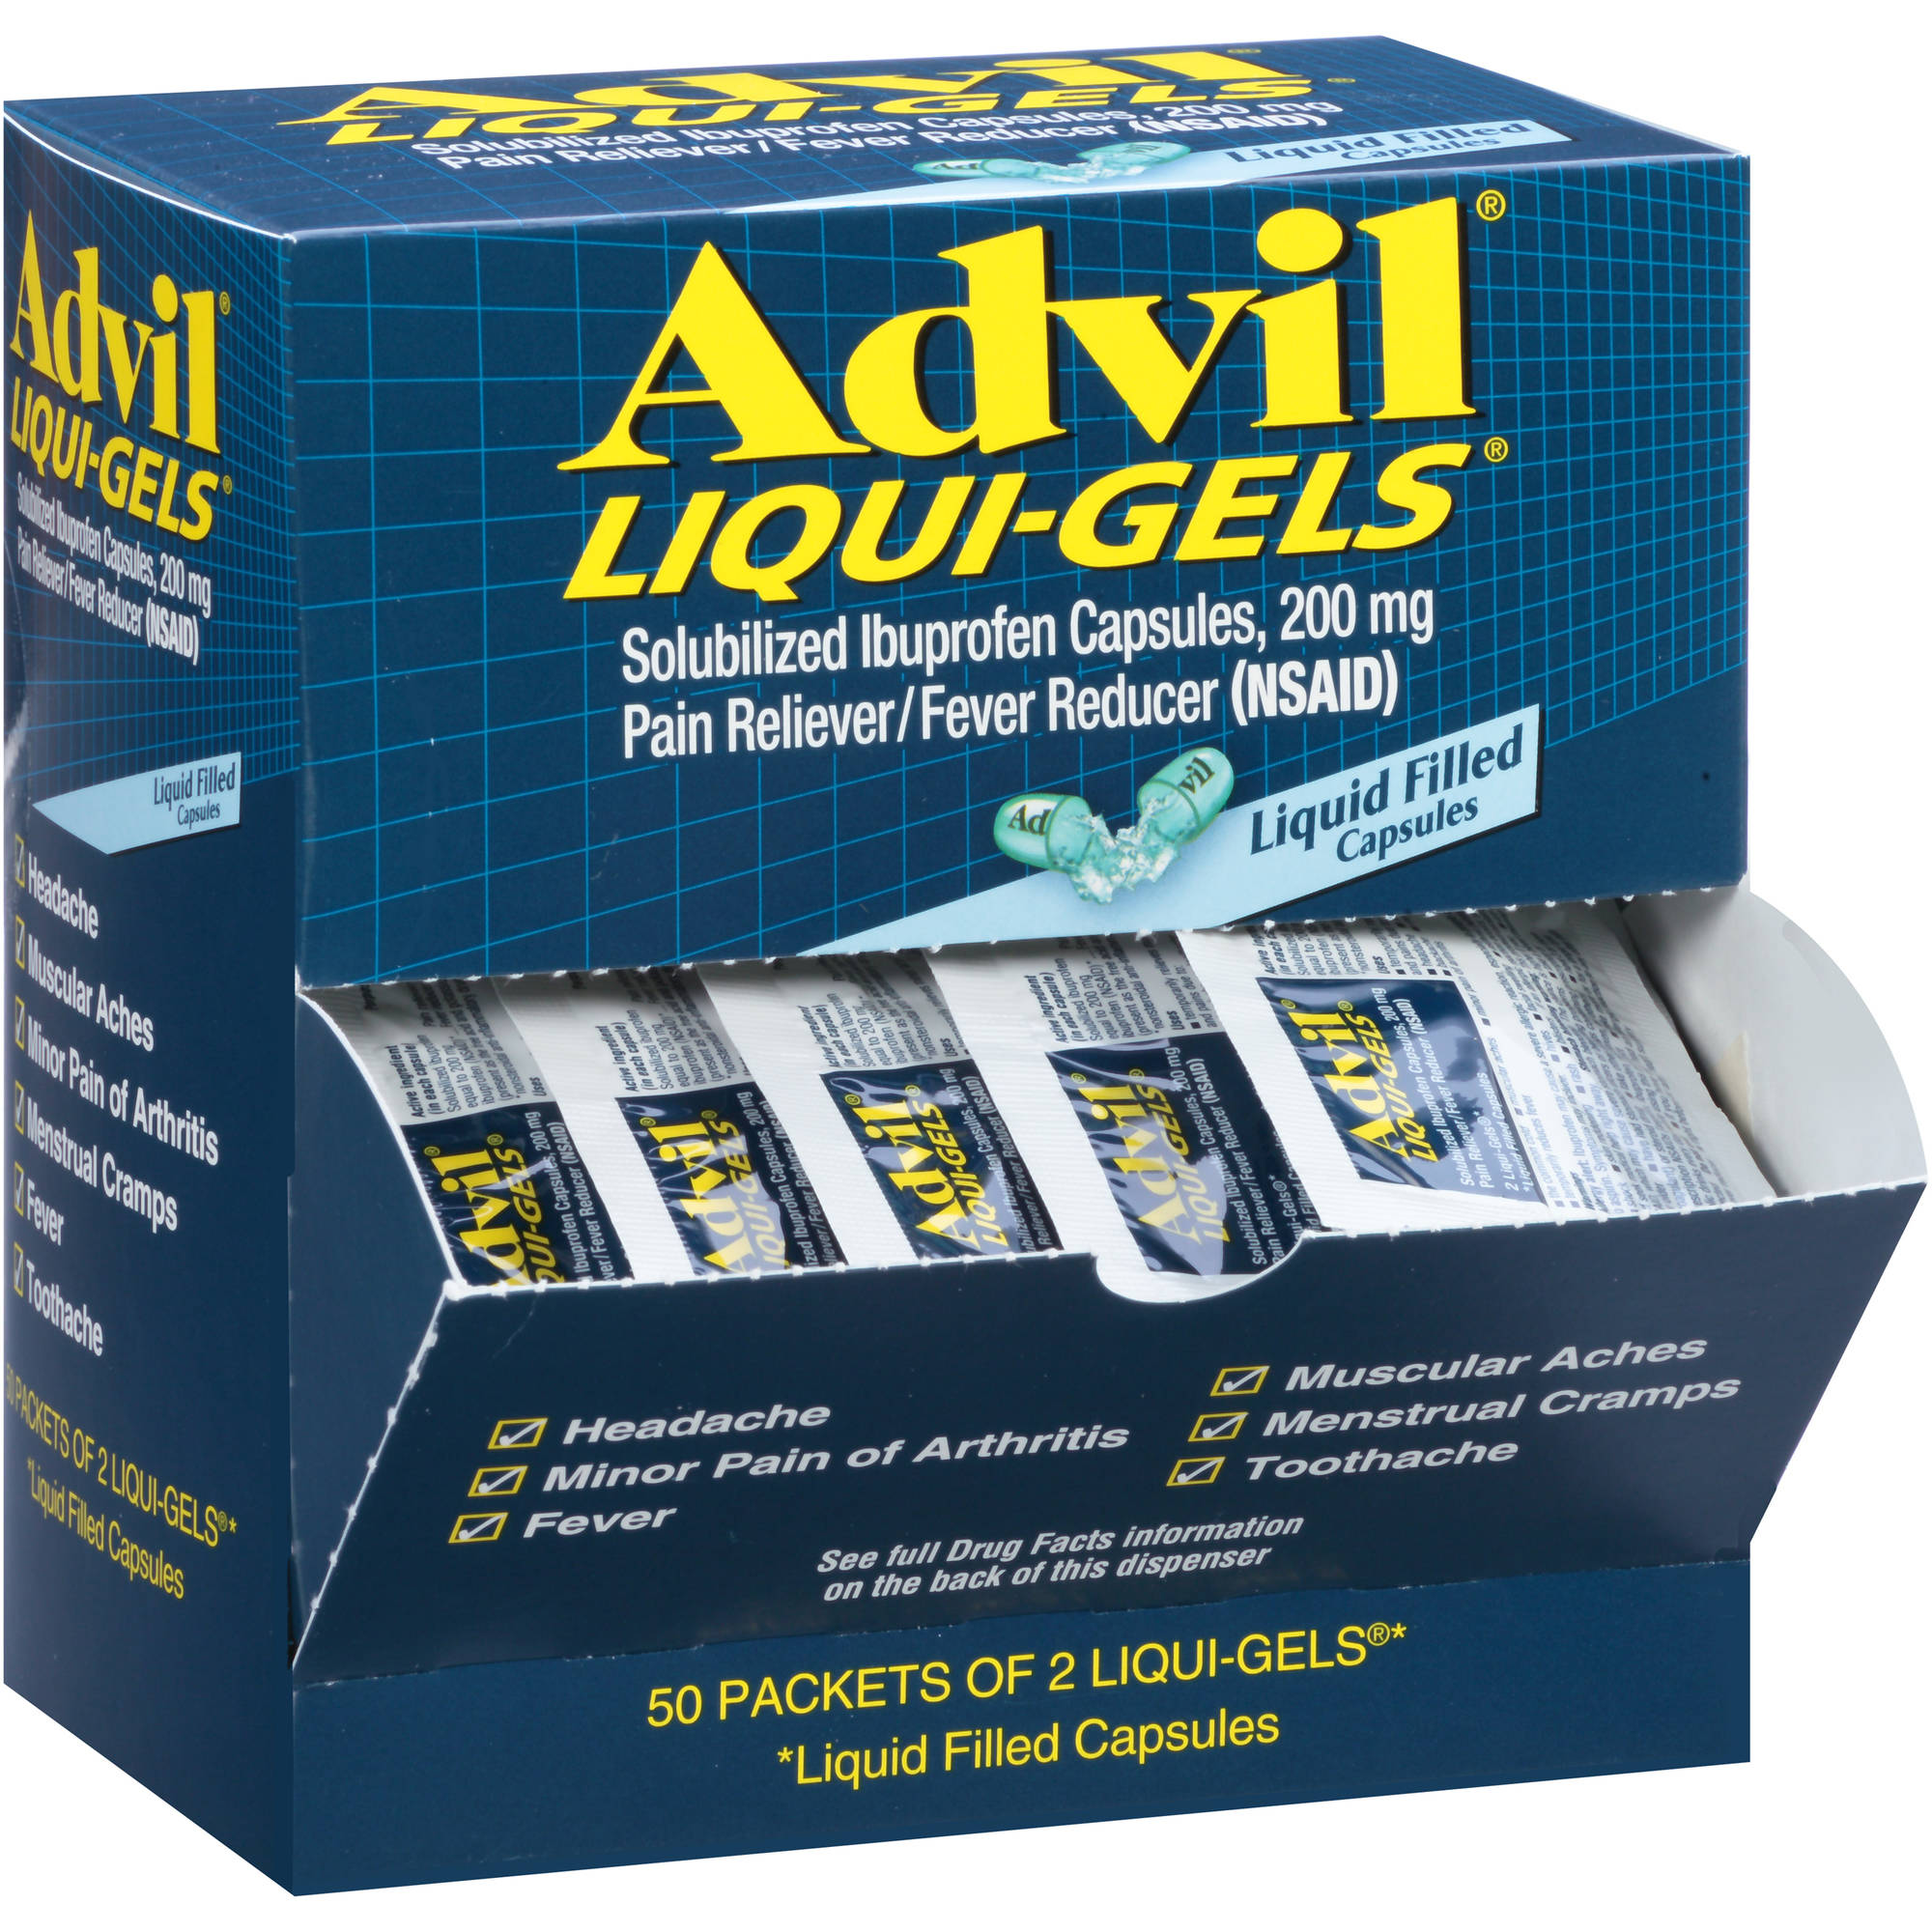 Advil Liqui-Gels Pain Reliever / Fever Reducer (Ibuprofen), 200 mg 2 count, Pack of 50